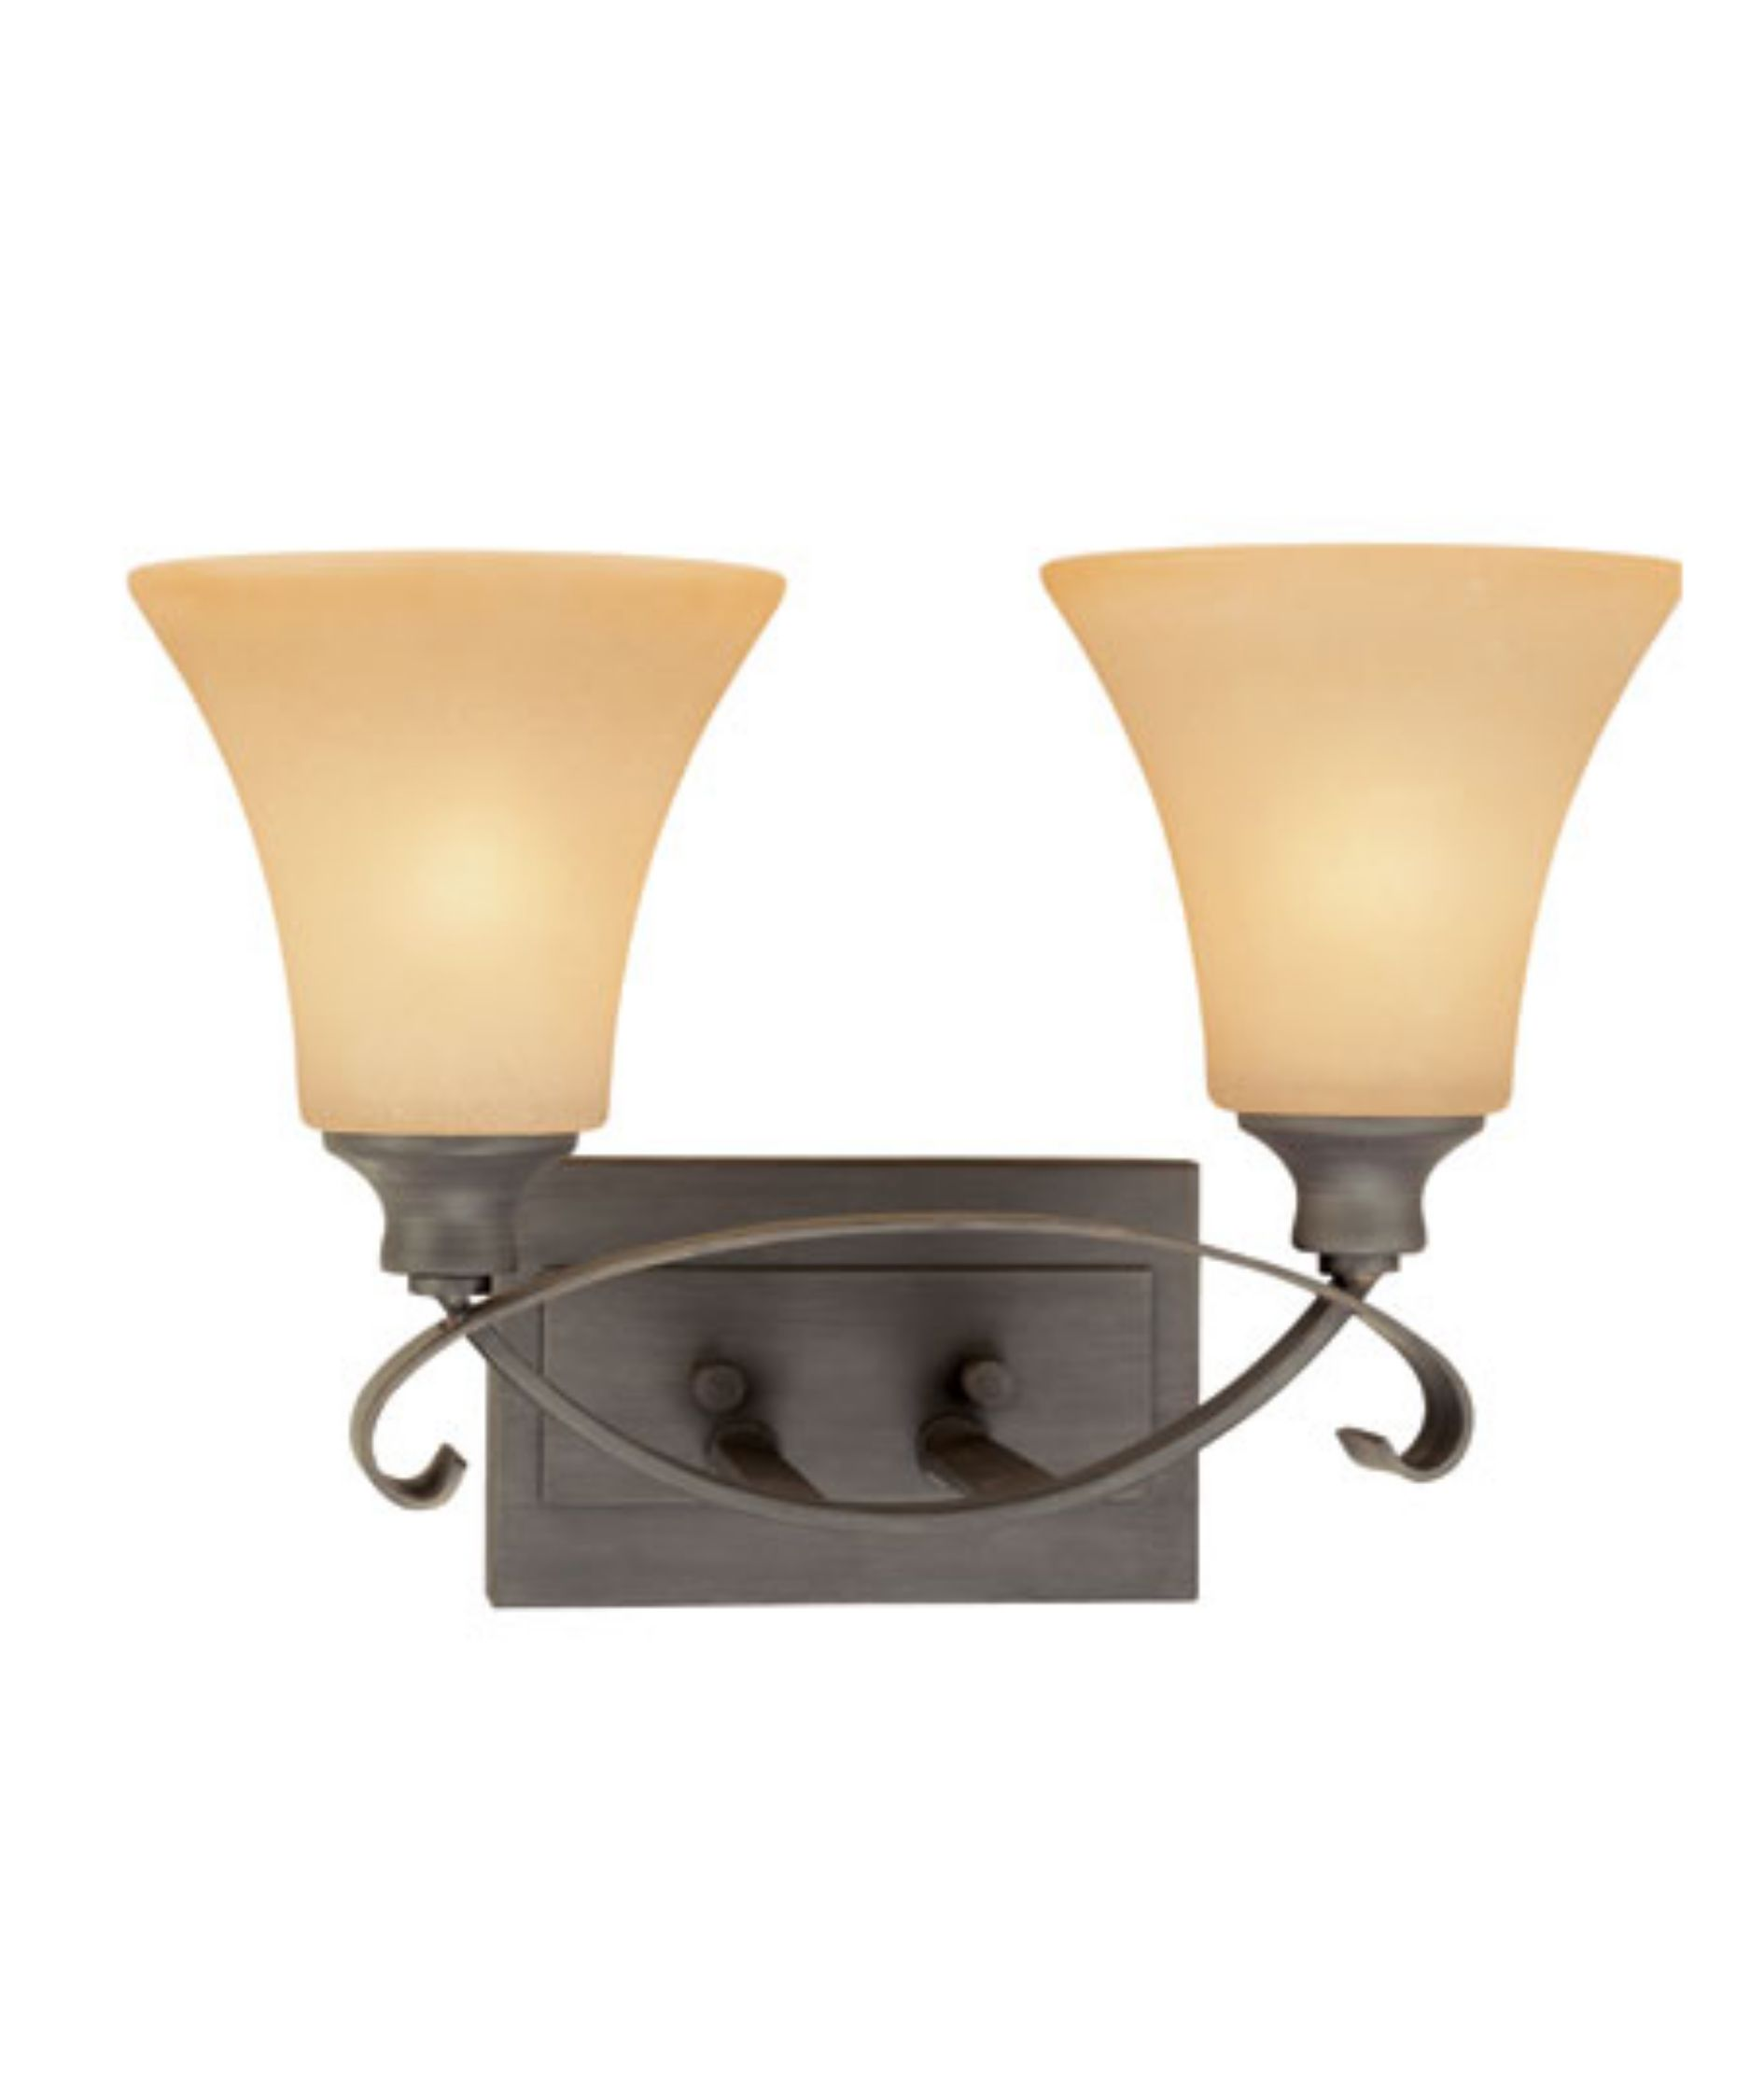 bathroom lighting fixtures photo 15. Thomas Lighting M1702 Magnolia 15 Inch Bath Vanity Light | Capitol 1-800lighting. Bathroom Fixtures Photo A